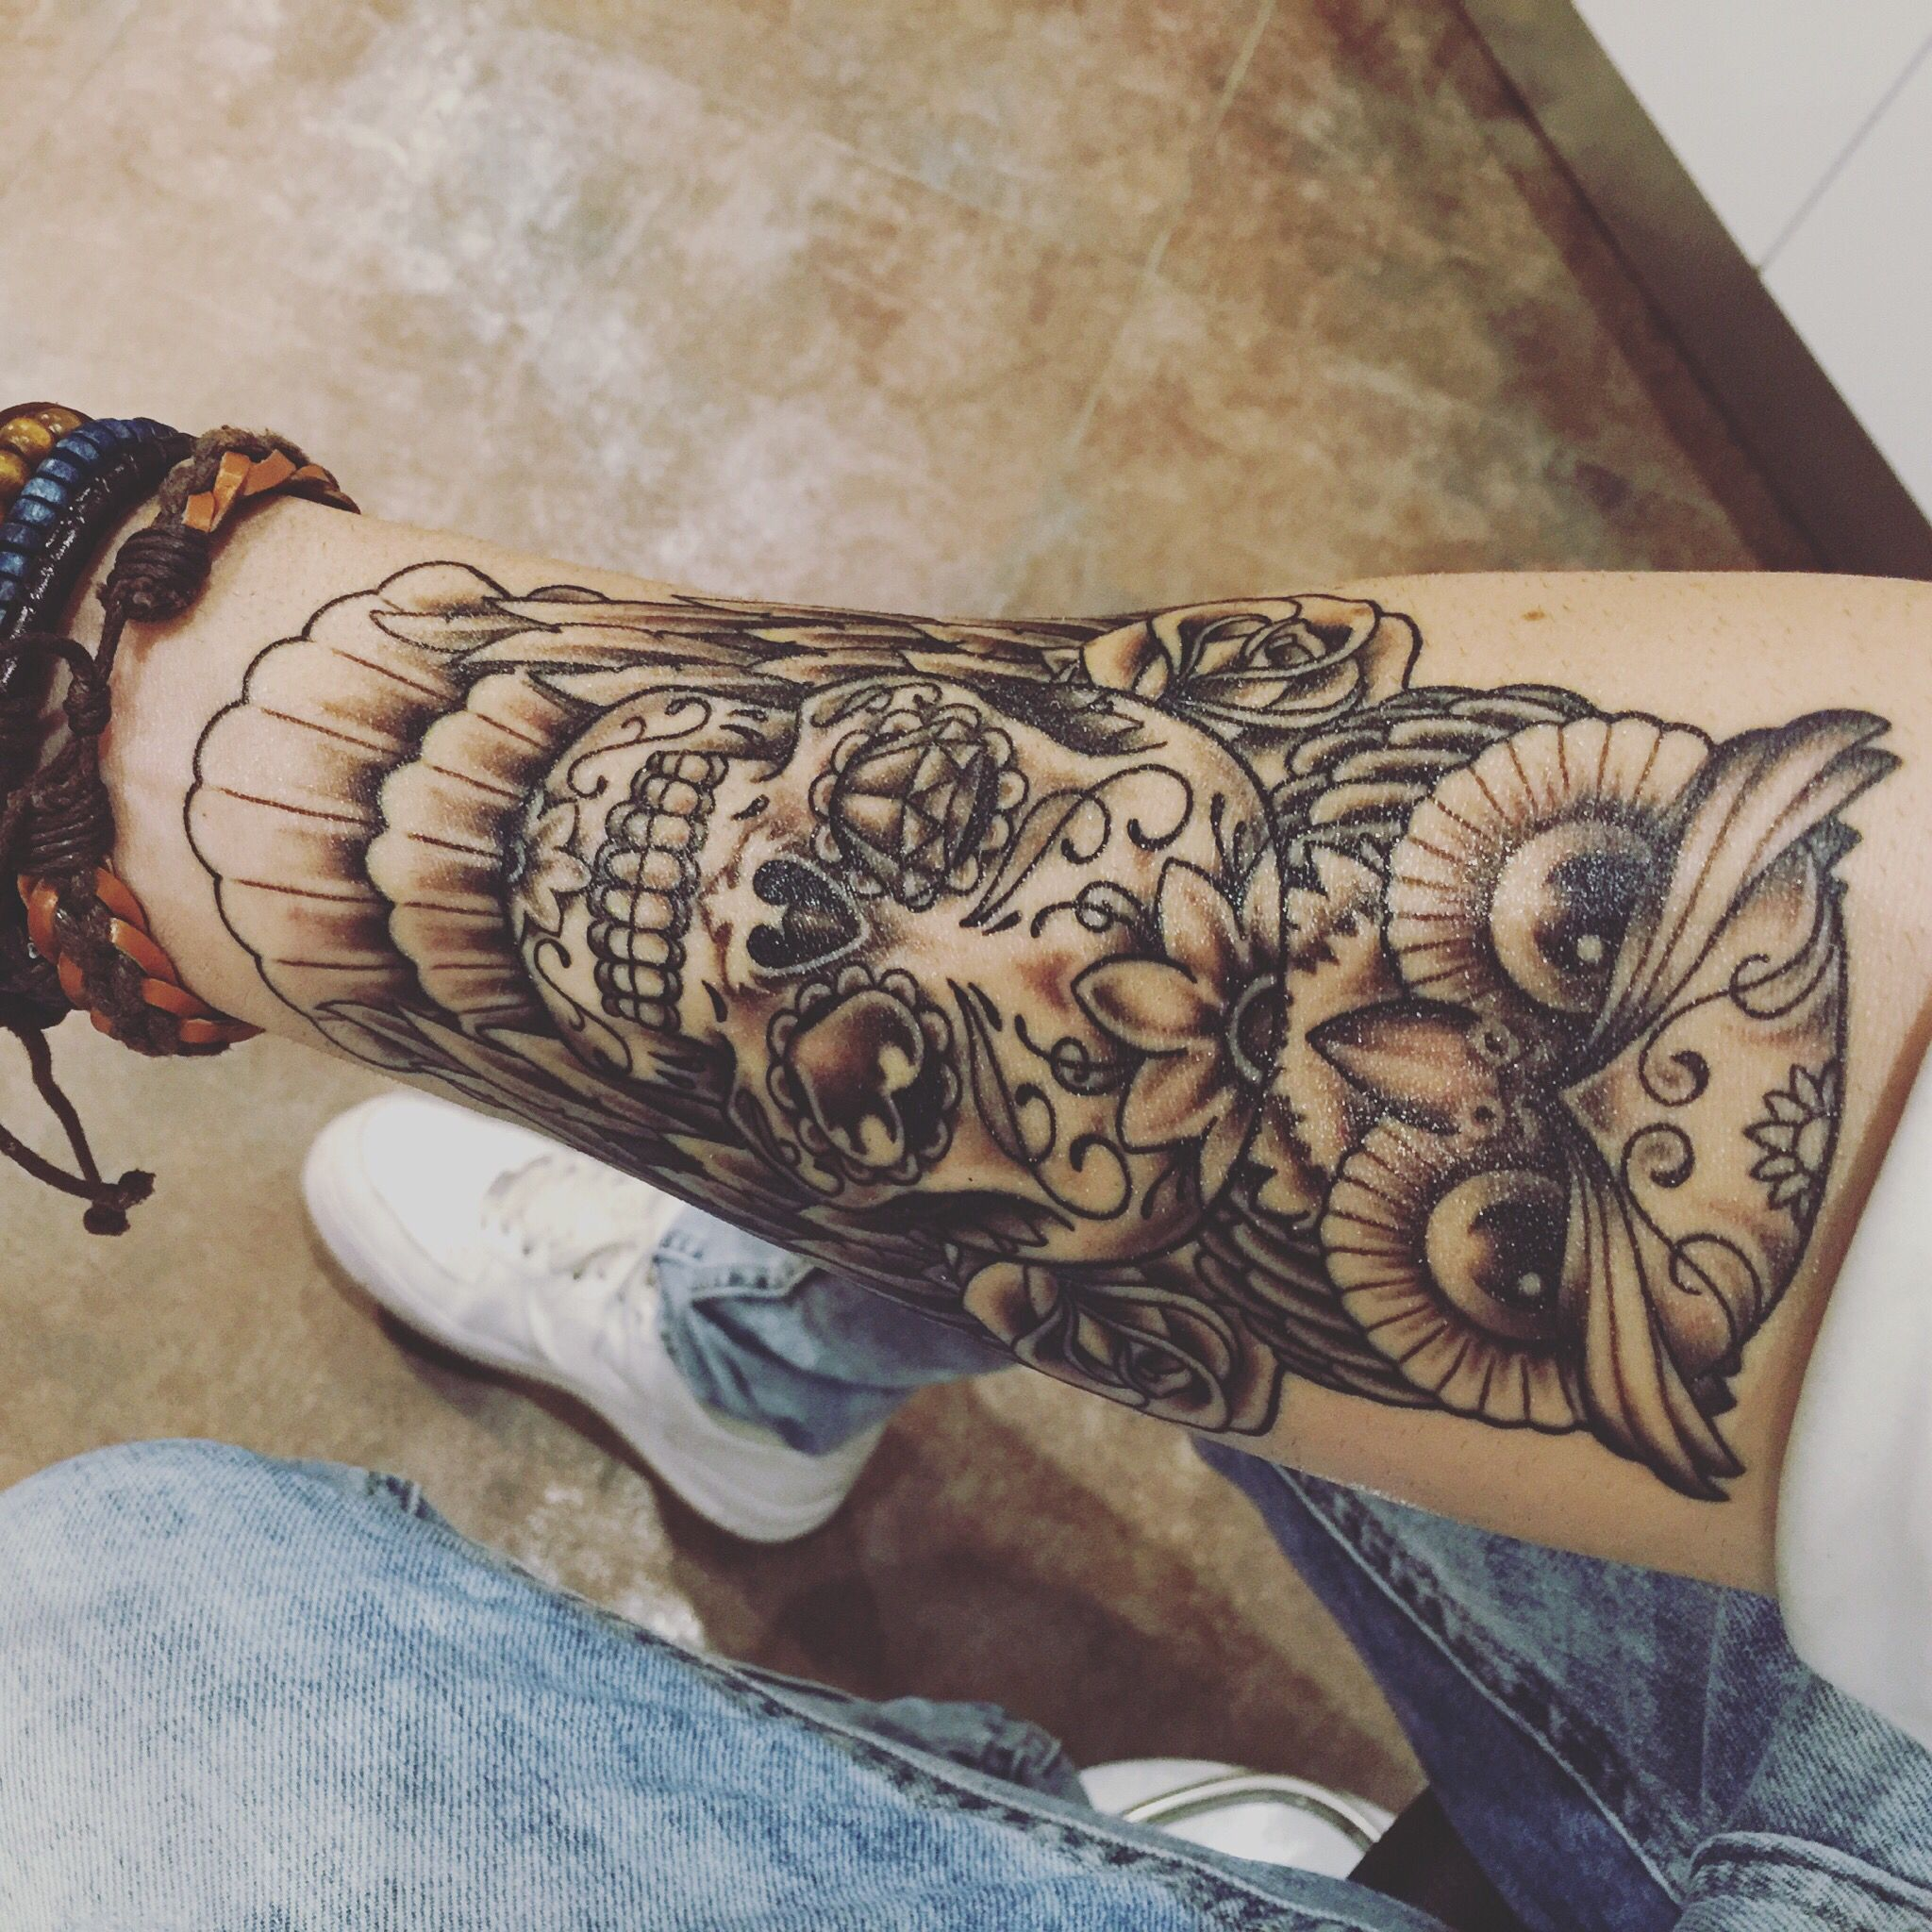 Hibou Skull Mexicain Tatoo Bras Tattoo Ideas Tatouage Tatouage